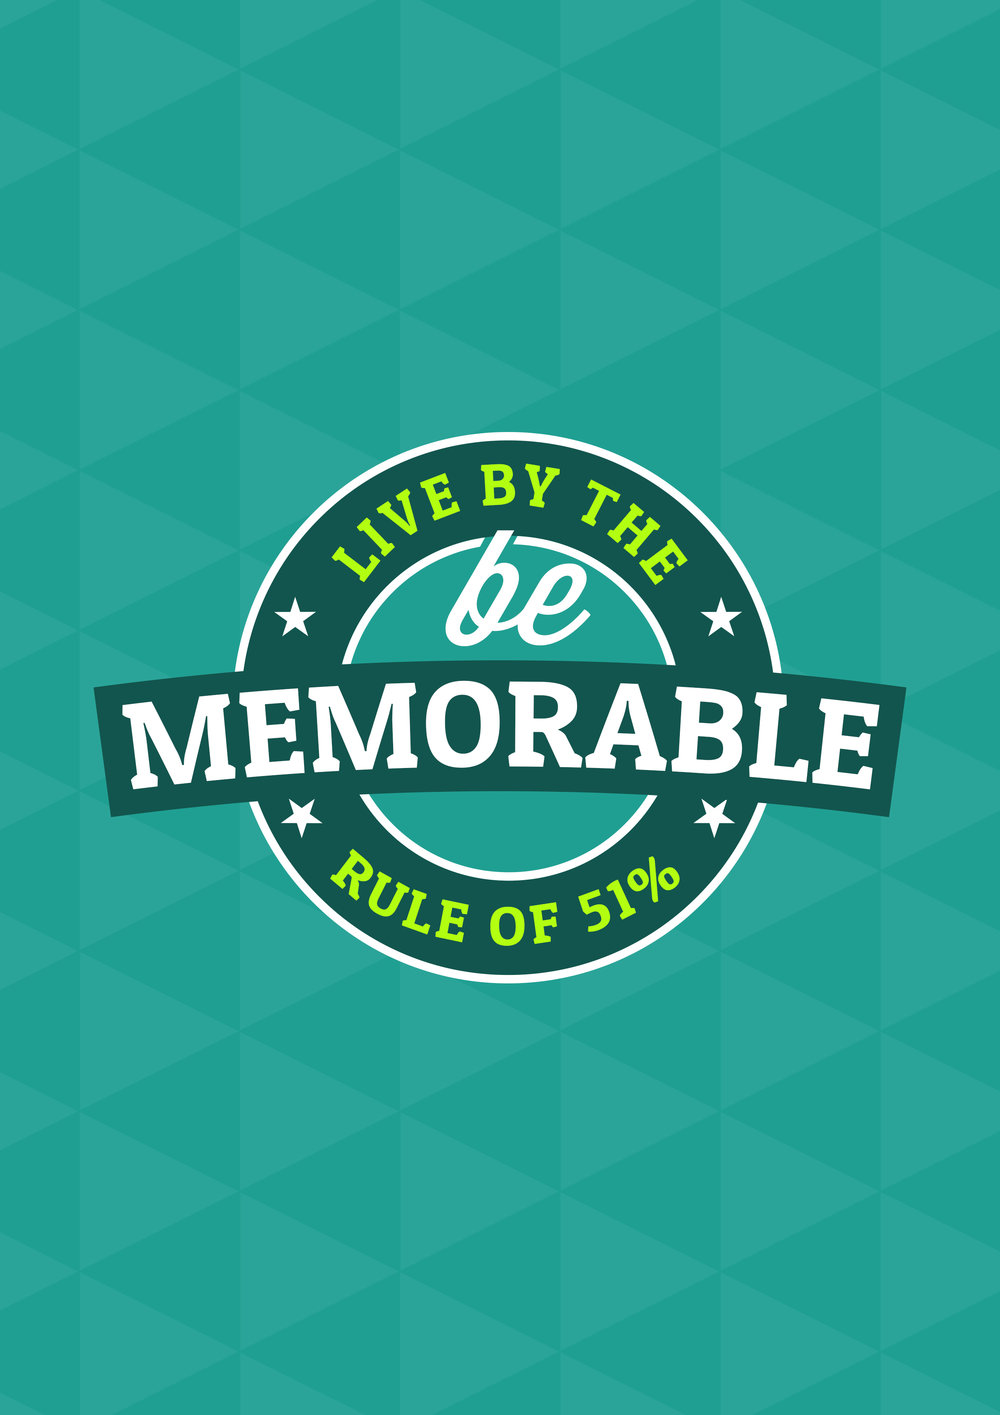 Be Memorable2.jpg